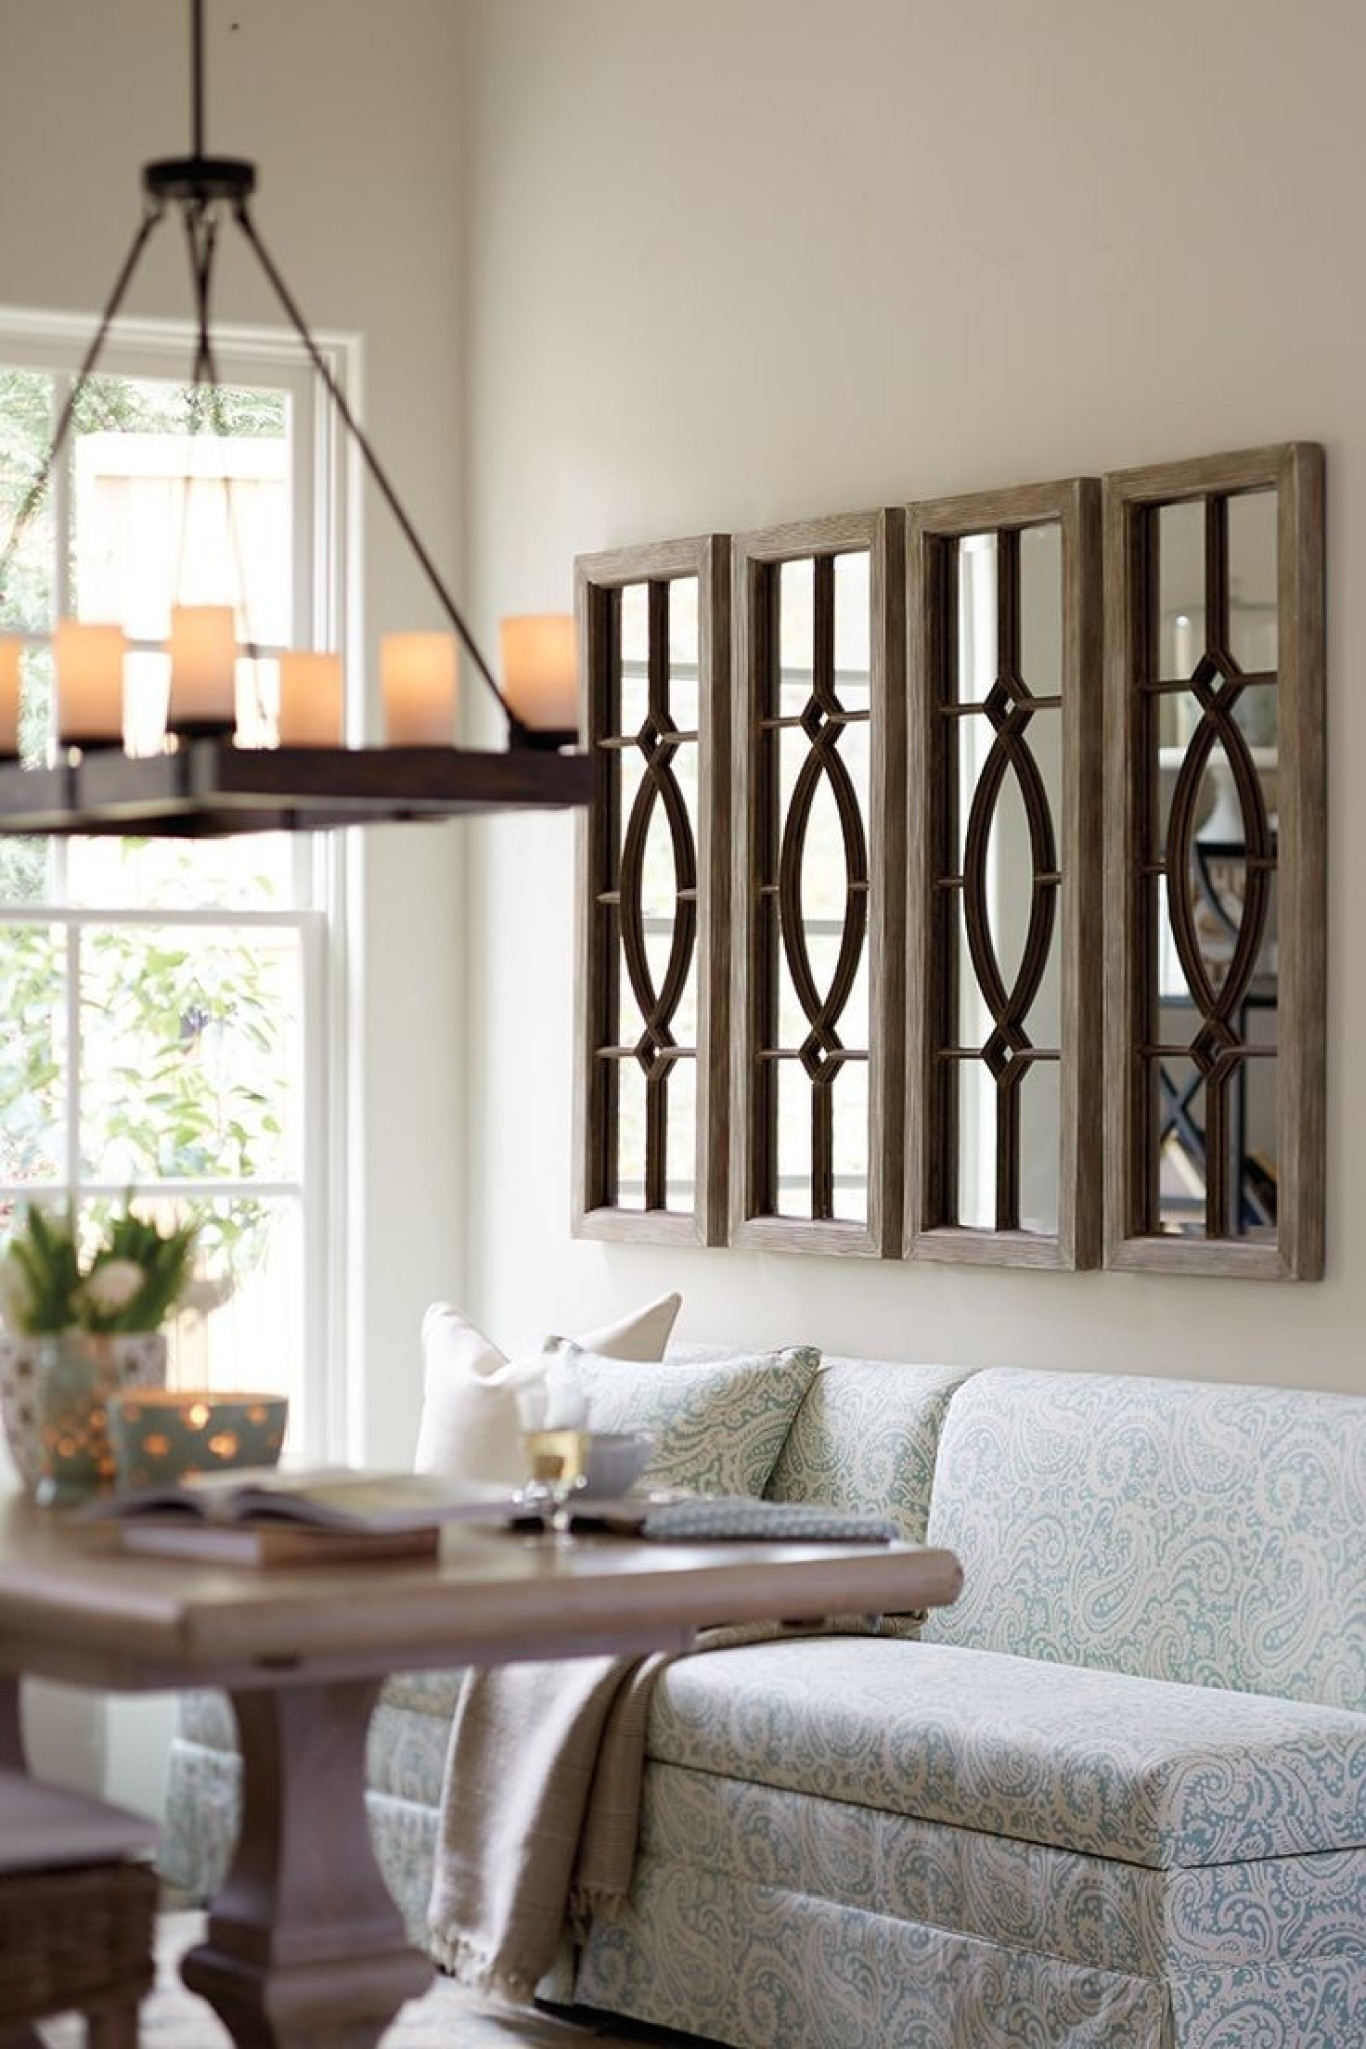 Wall Decor Throughout Most Current Wall Accents For Dining Room (Gallery 14 of 15)